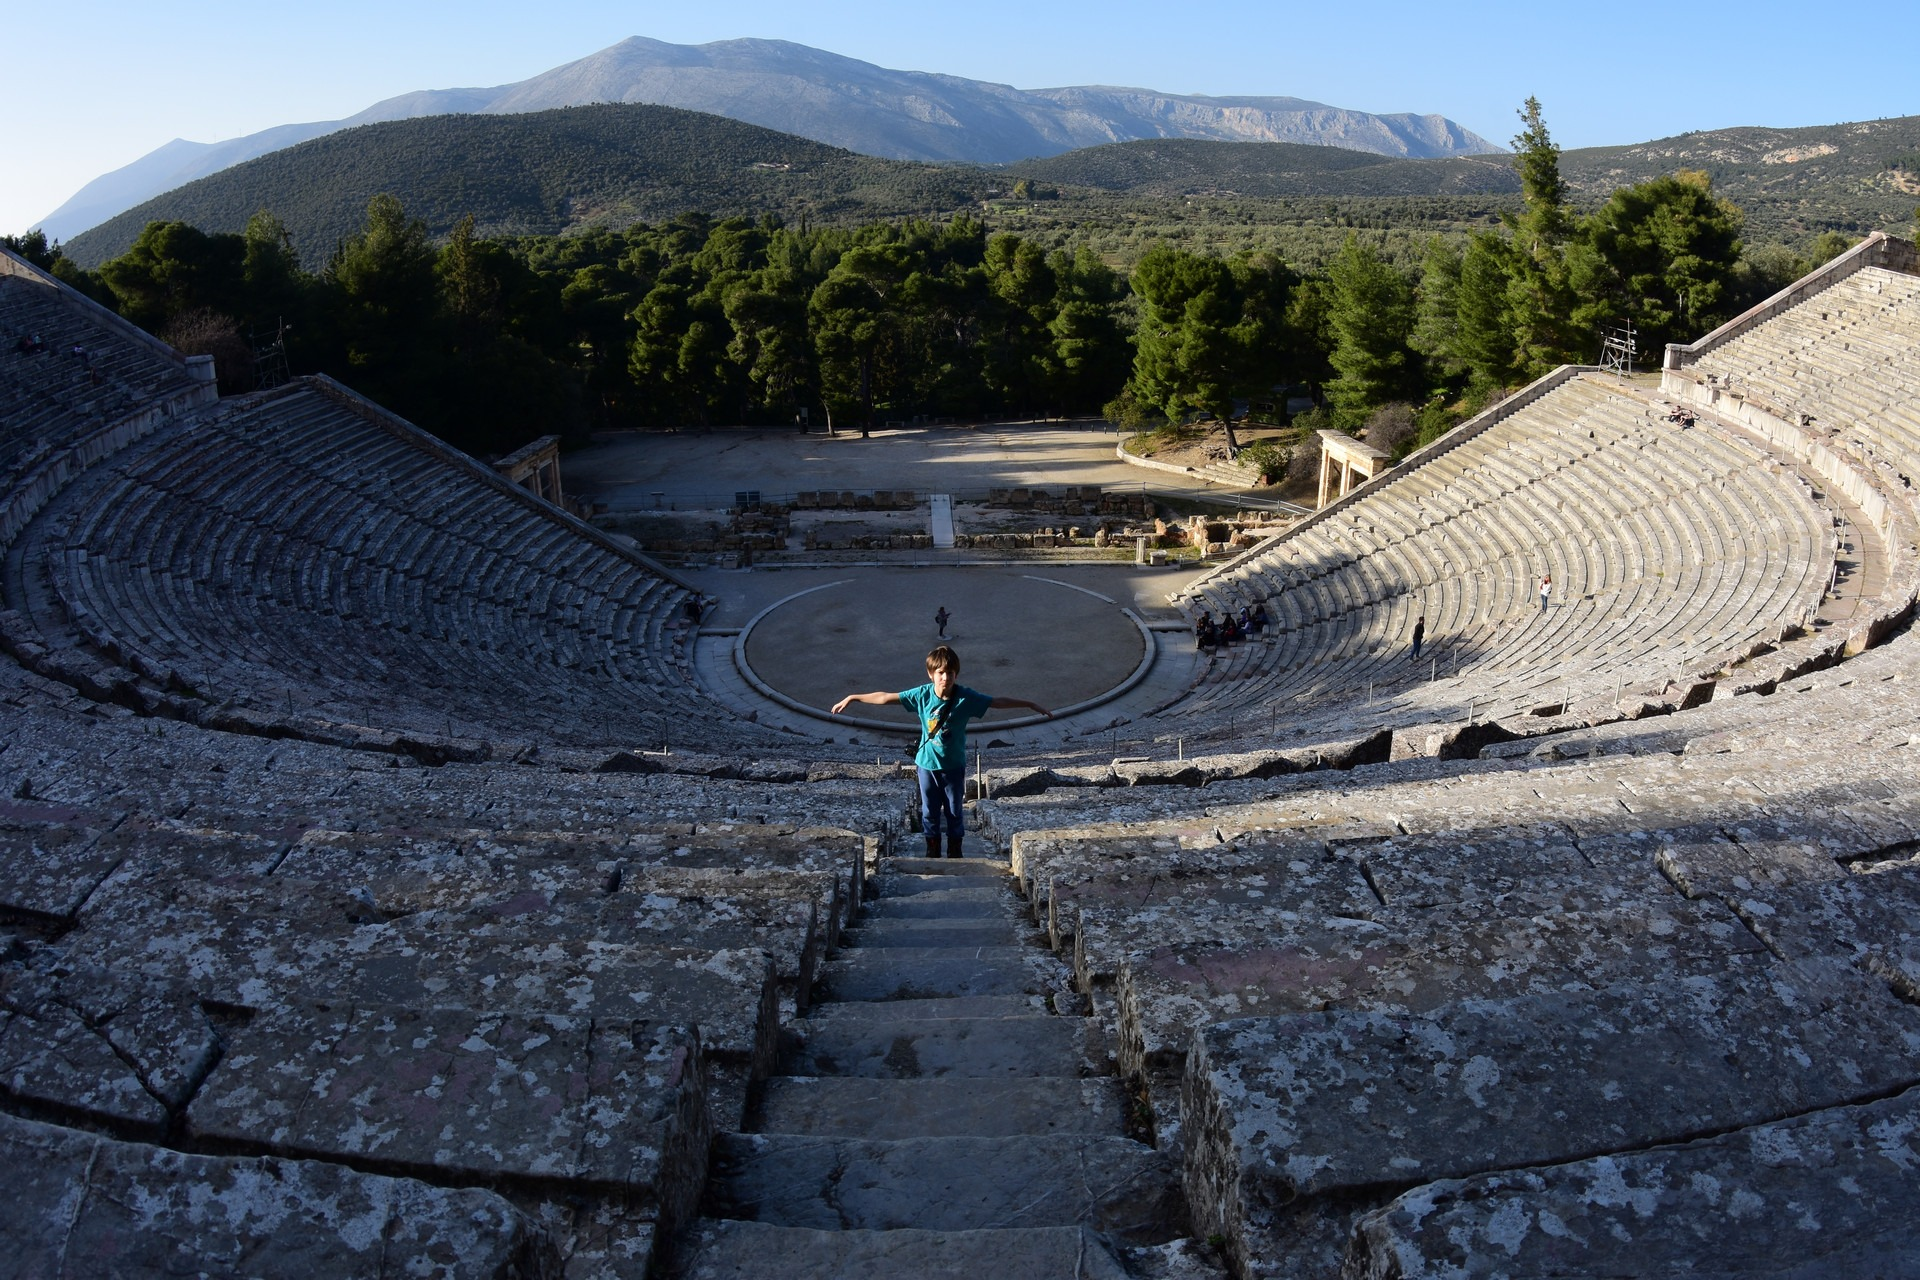 Mycenae, Tiryns and Epidauros